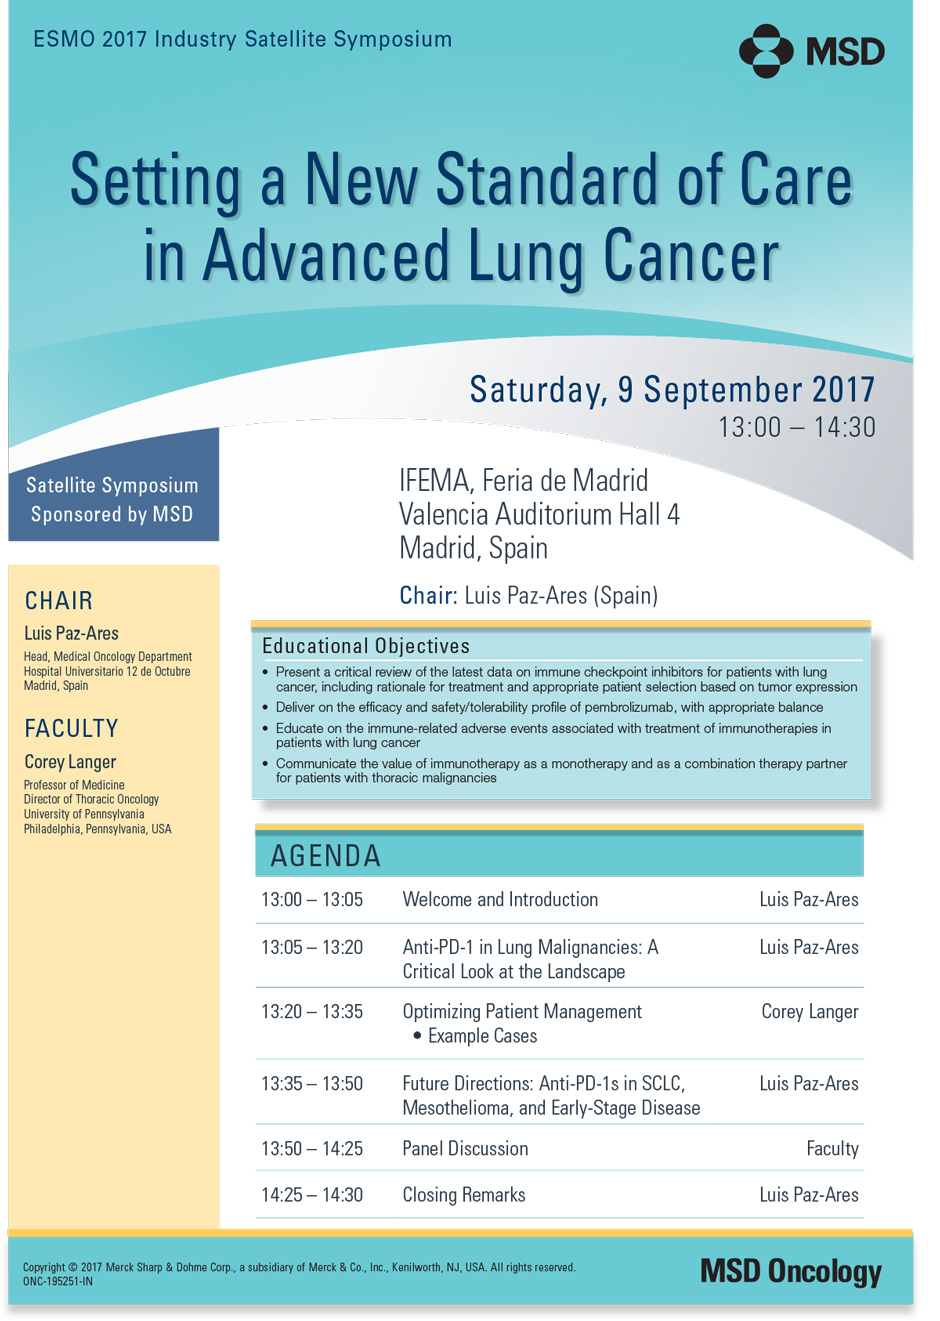 Setting a New Standard of Care in Advanced Lung Cancer